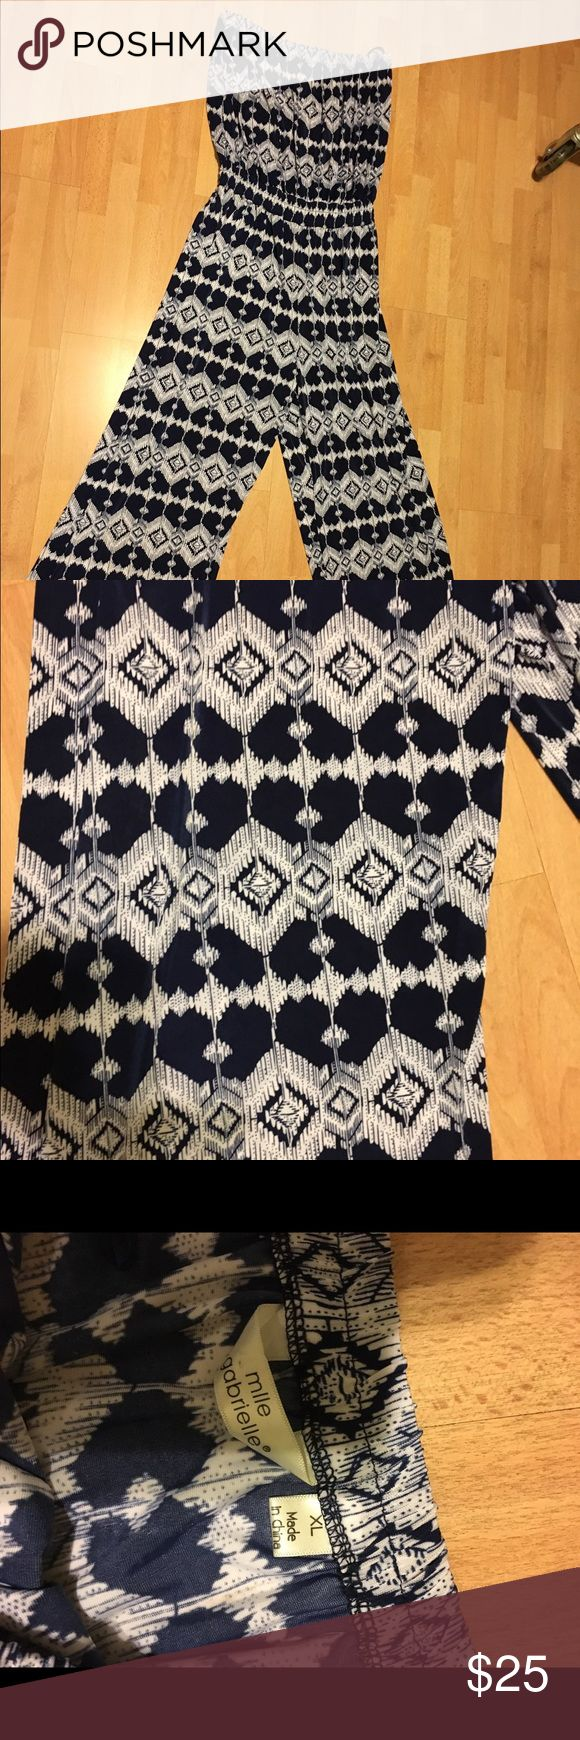 Strapless jumpsuit Navy Blue and white jumpsuit nice and comfortable. Other